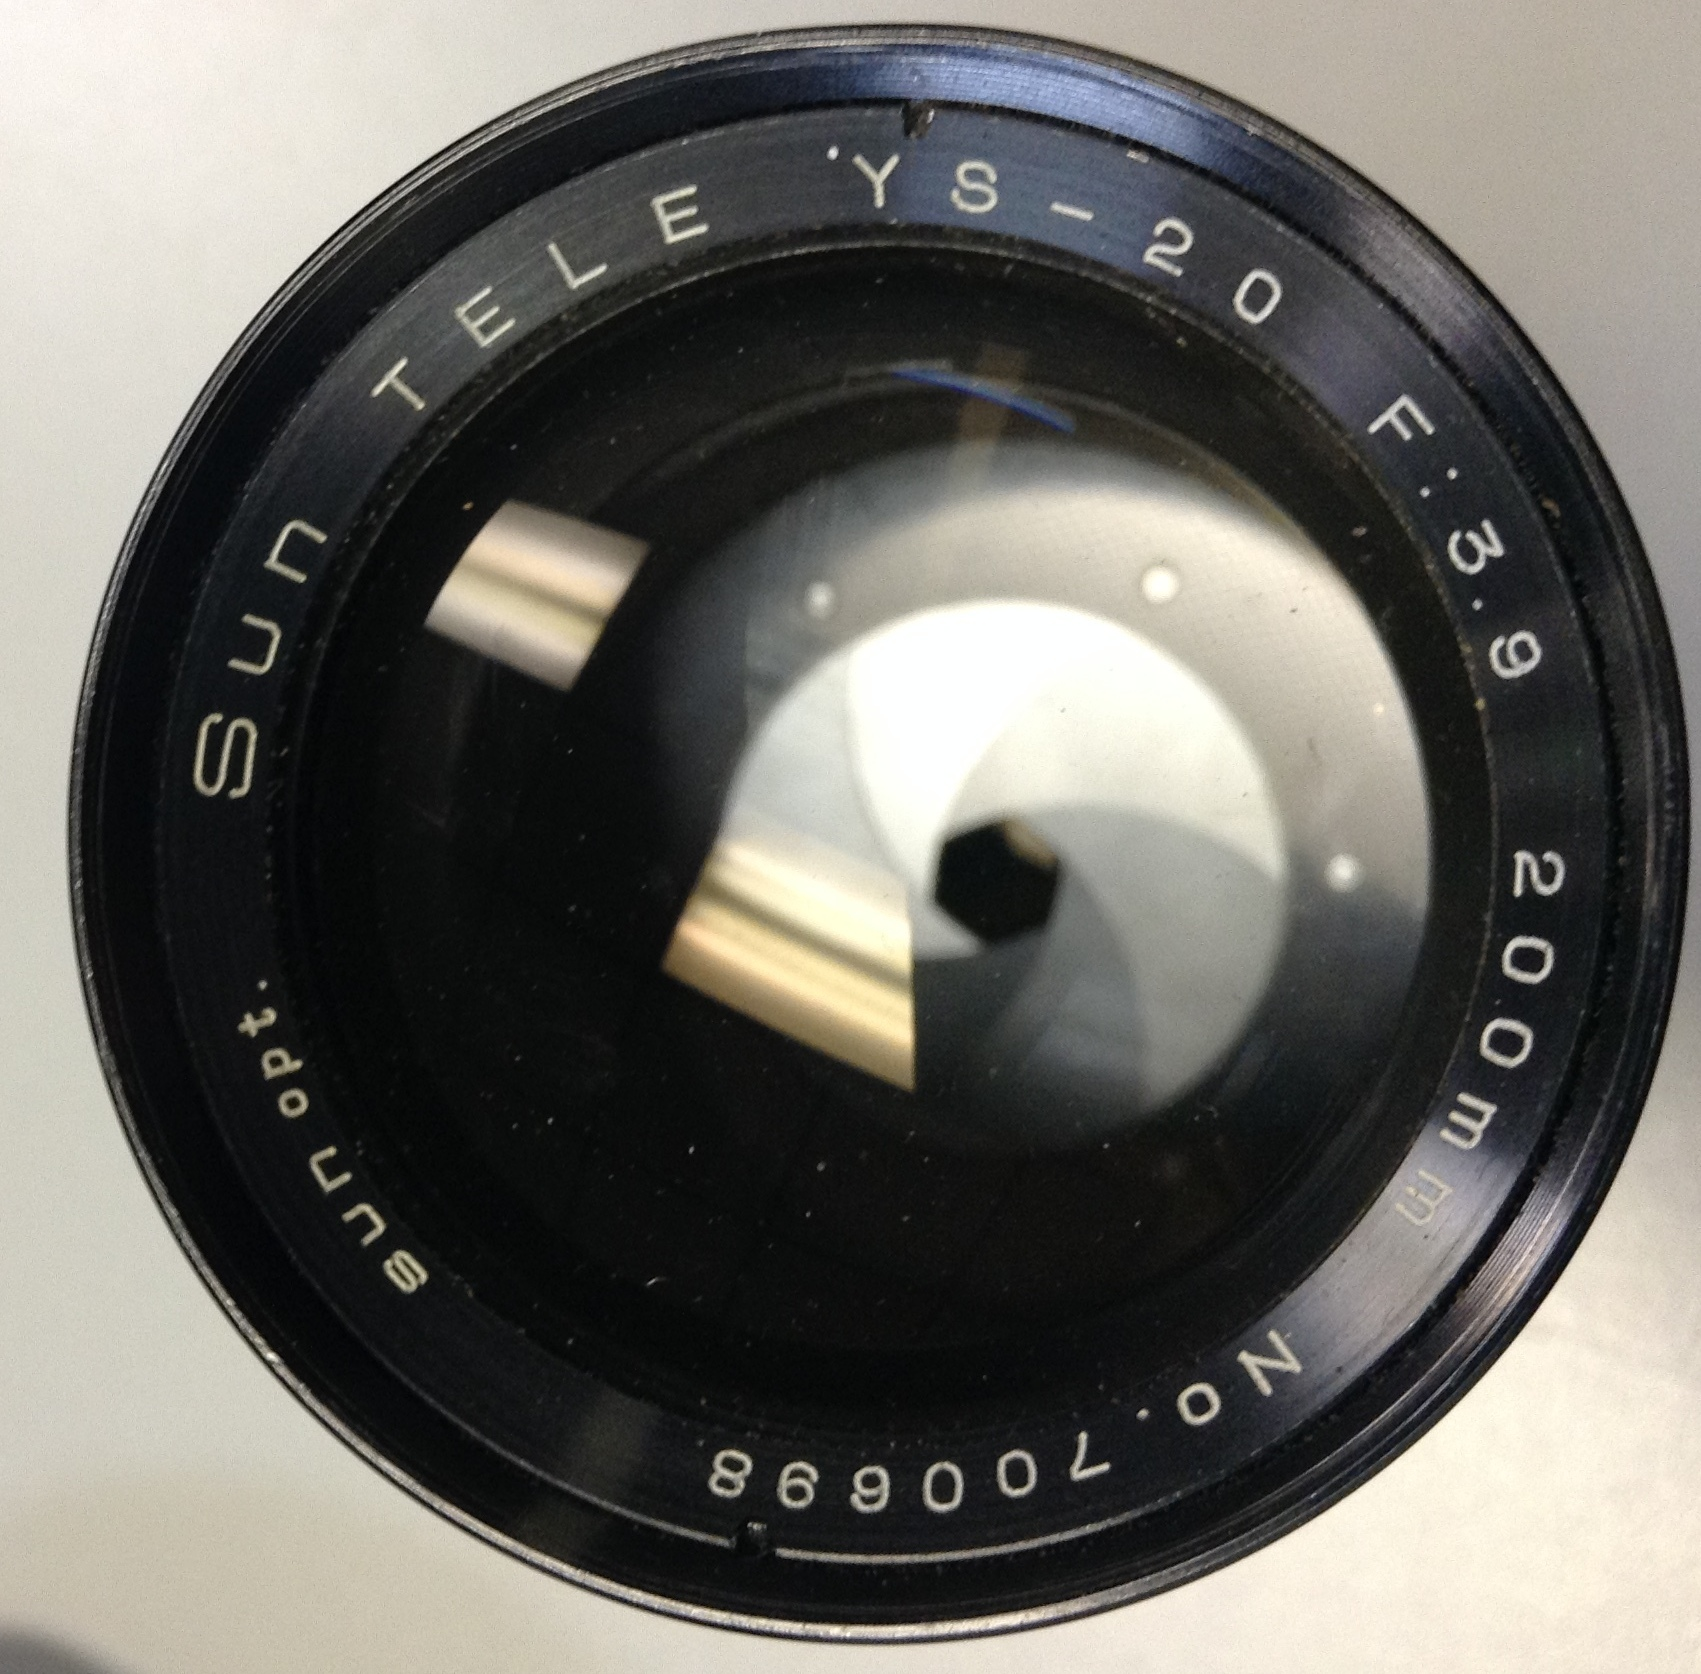 SUN TELE YS-20 200MM OPTIC LENS